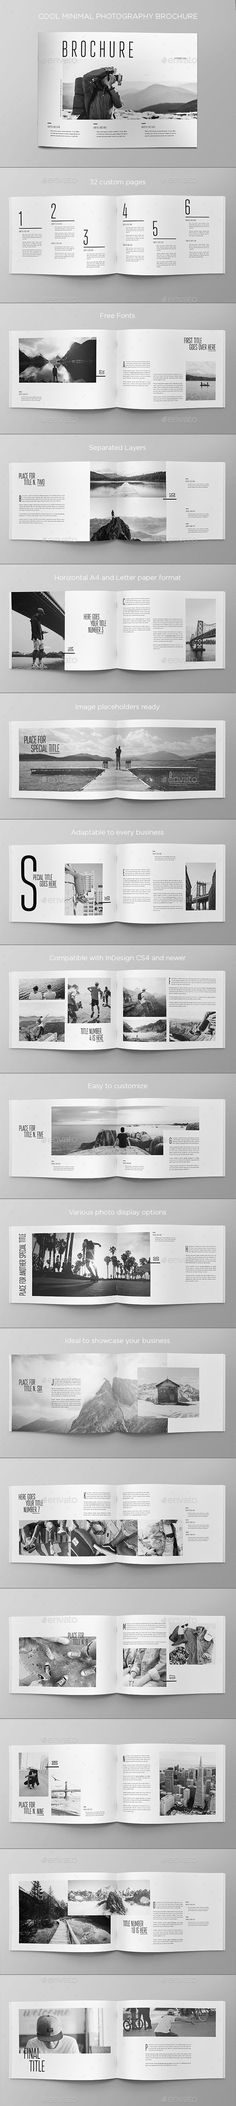 Cool Minimal Photography Brochure